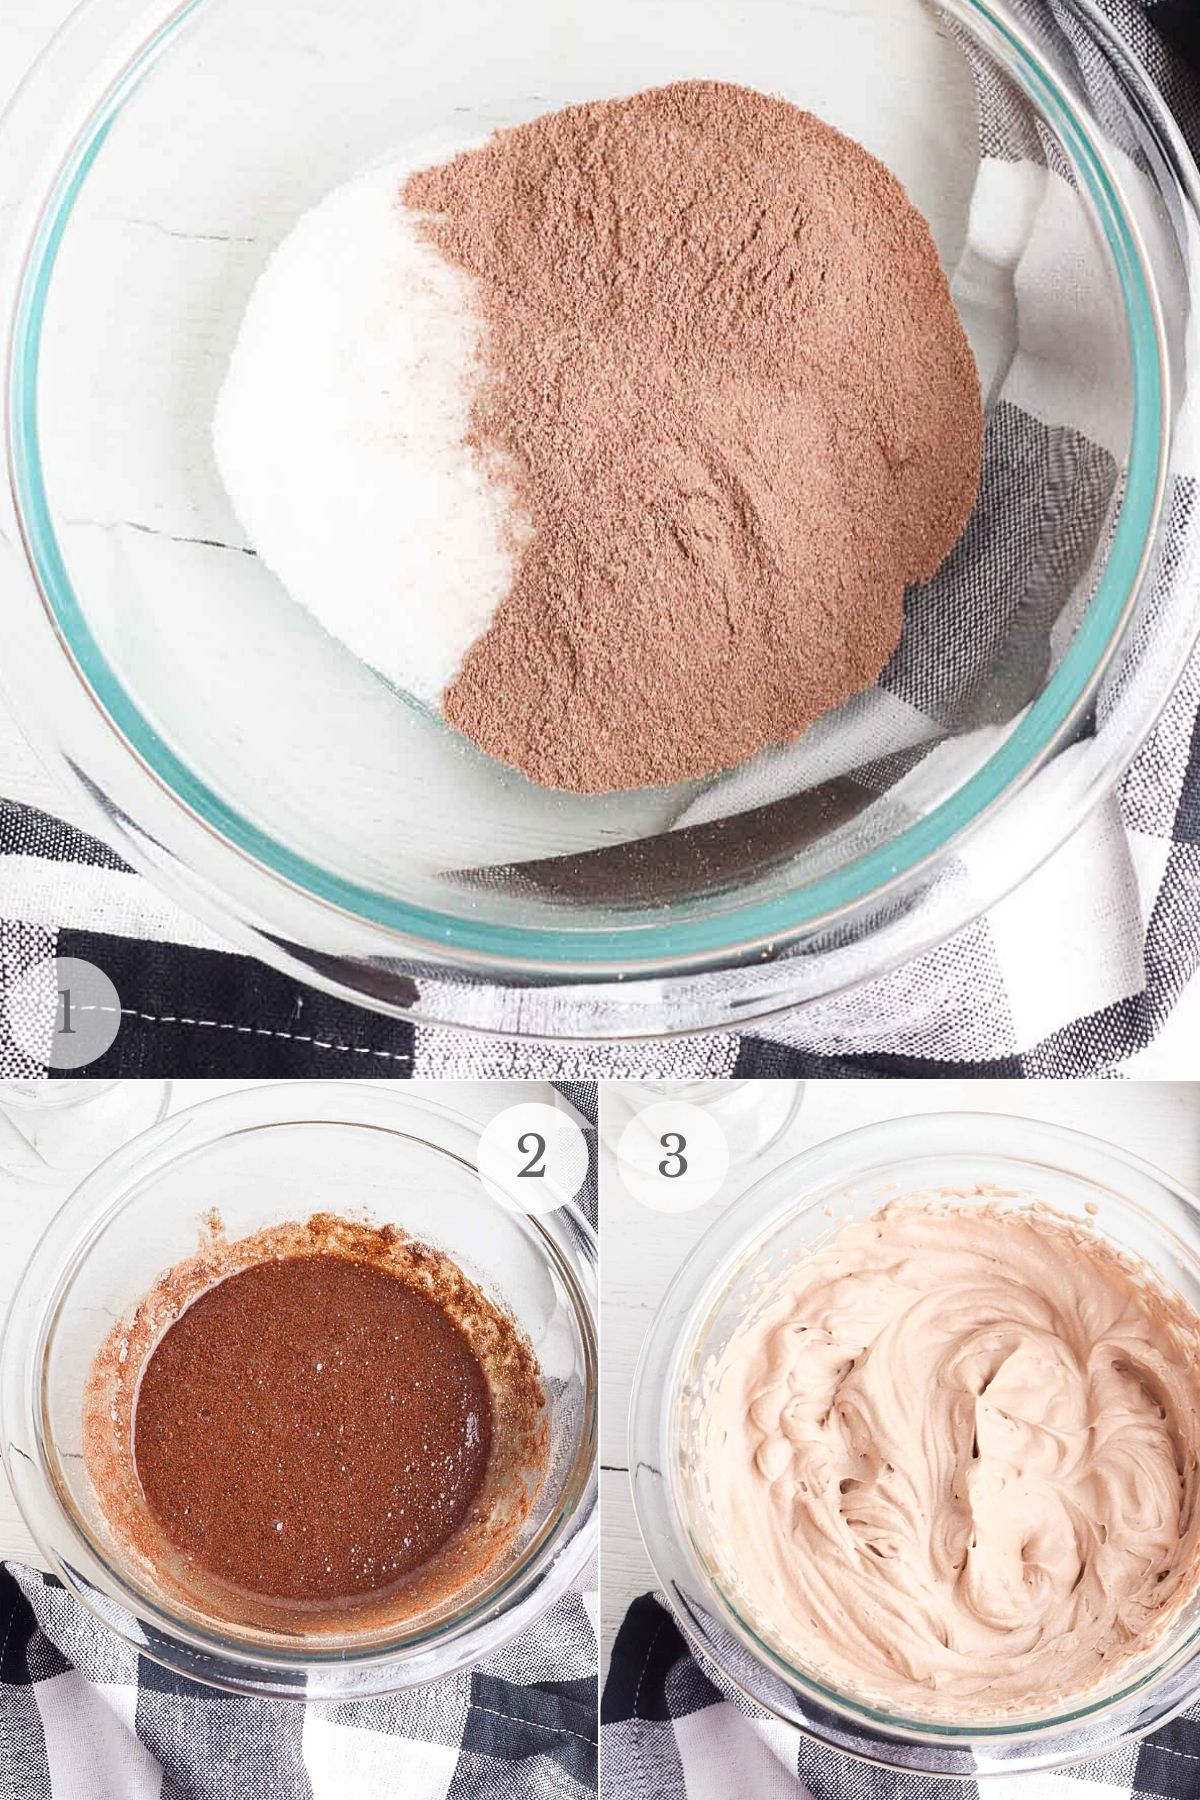 whipped hot chocolate recipe steps 1-3